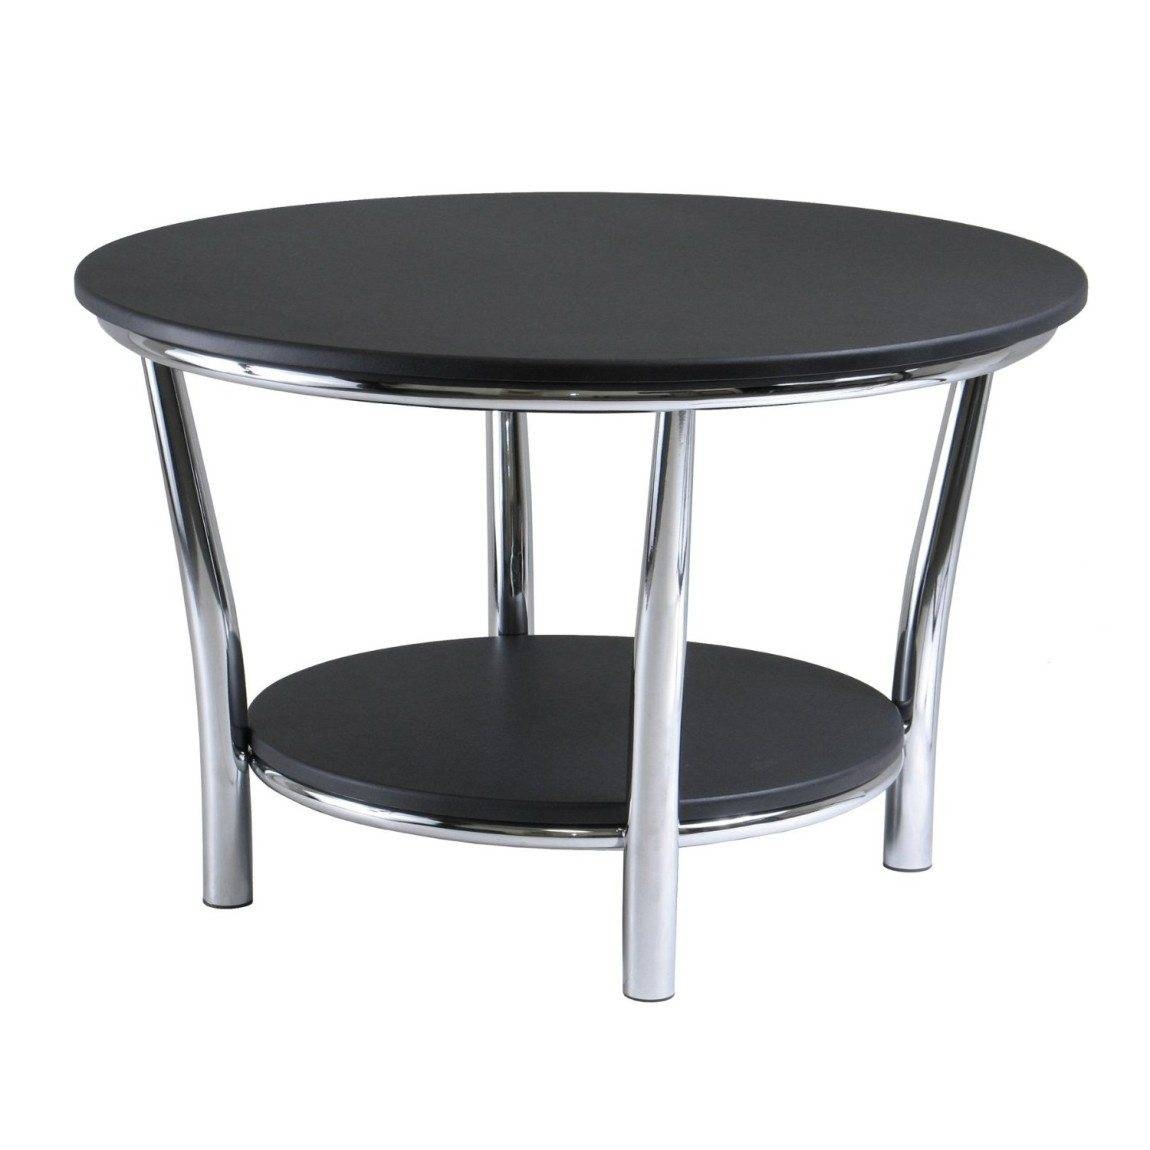 10 Budget Friendly Chic Coffee Tables Under $80 | Arts And Classy with regard to Oval Black Glass Coffee Tables (Image 1 of 30)